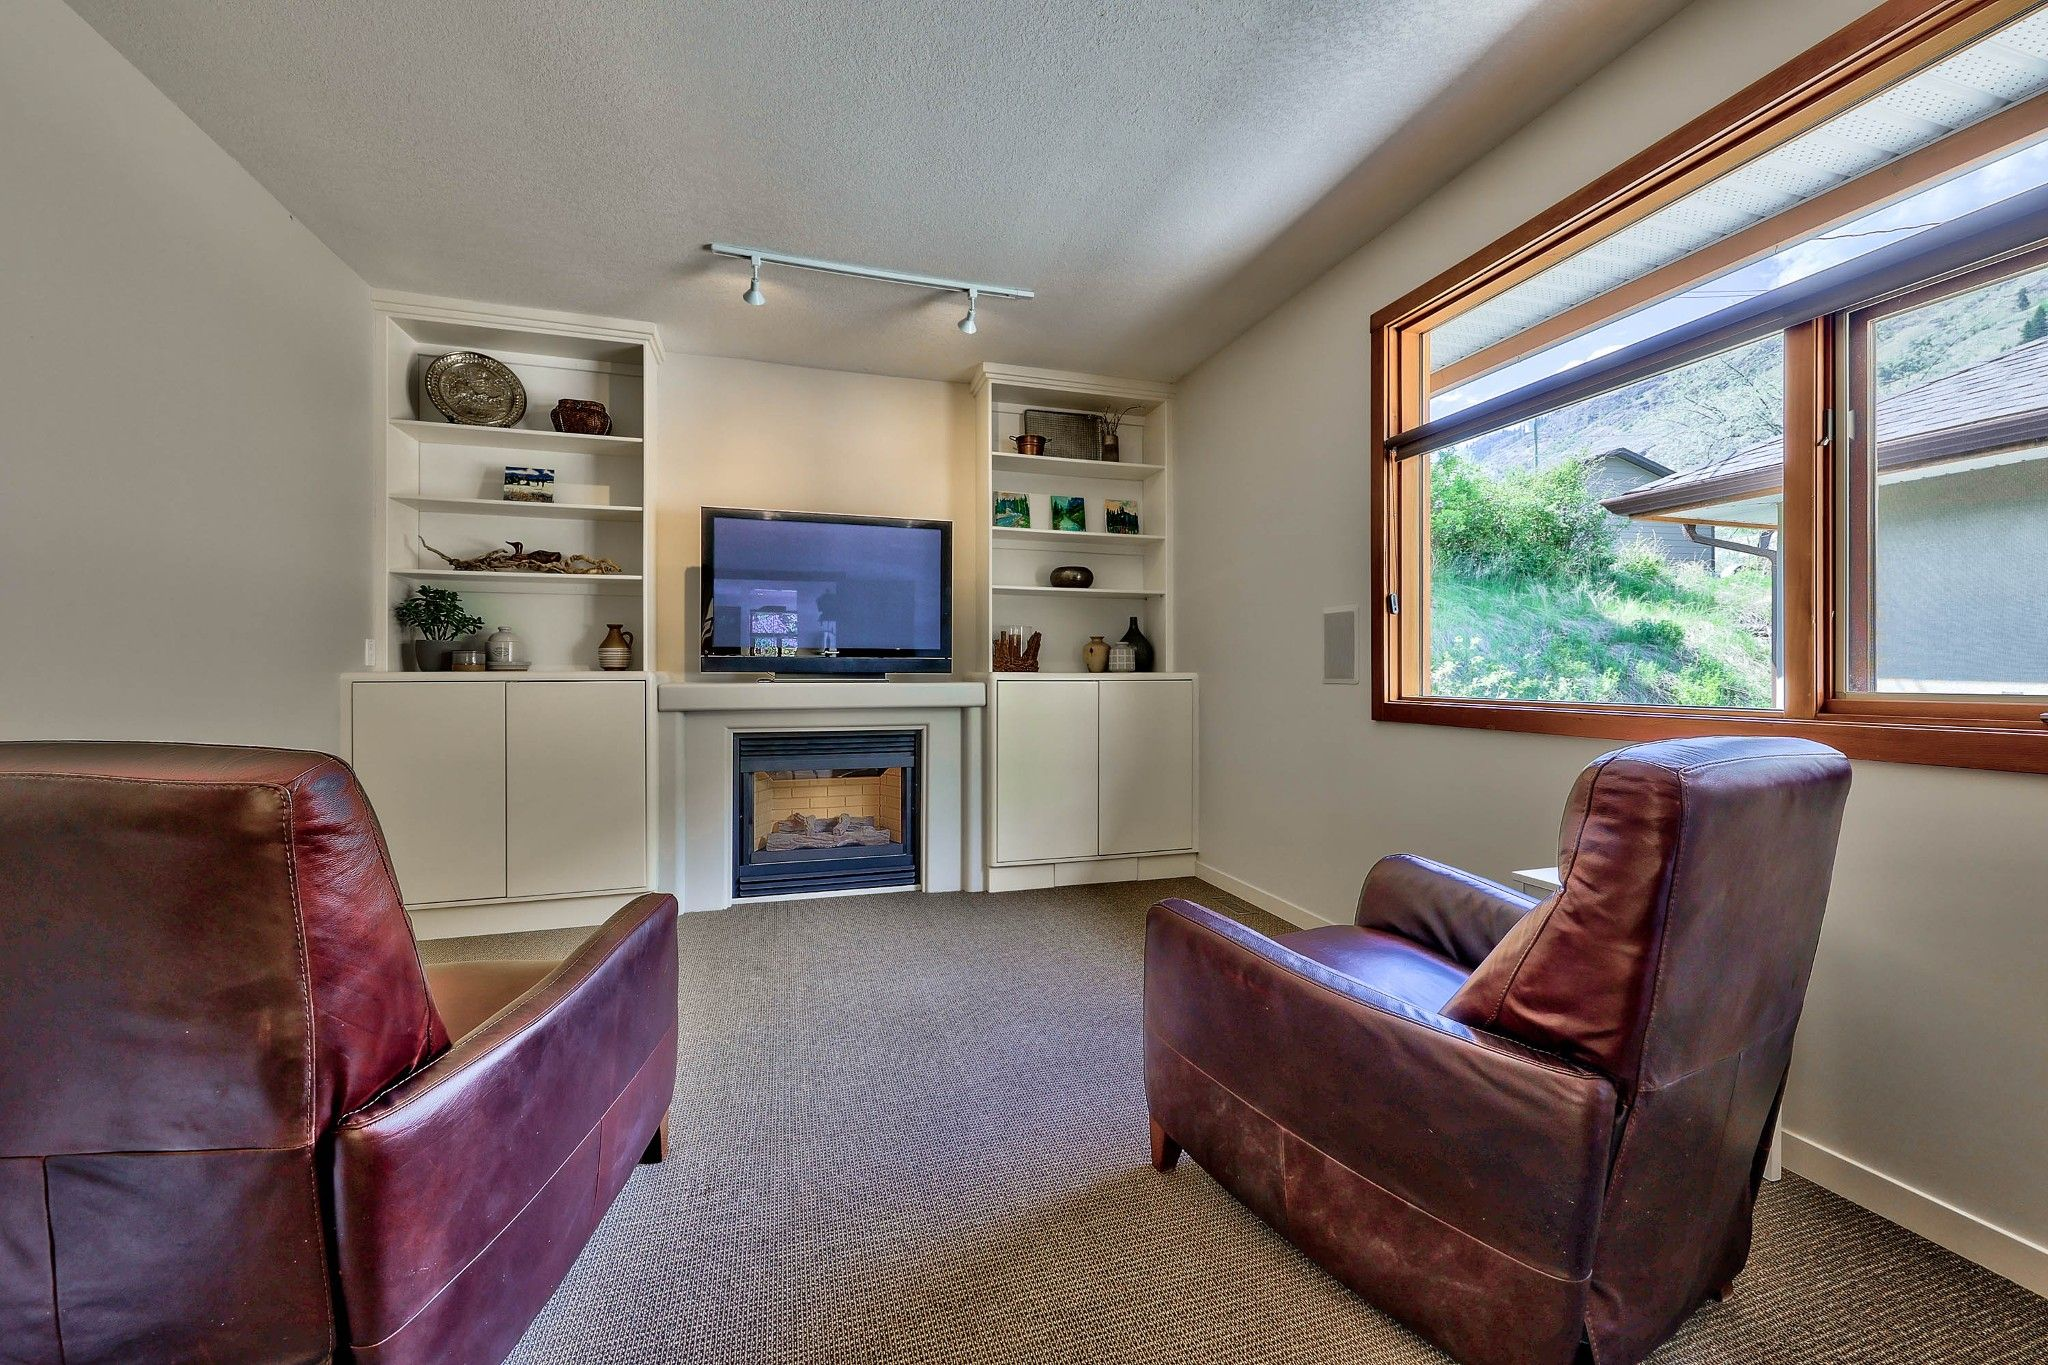 Photo 26: Photos: 3299 E Shuswap Road in Kamloops: South Thompson Valley House for sale : MLS®# 162162